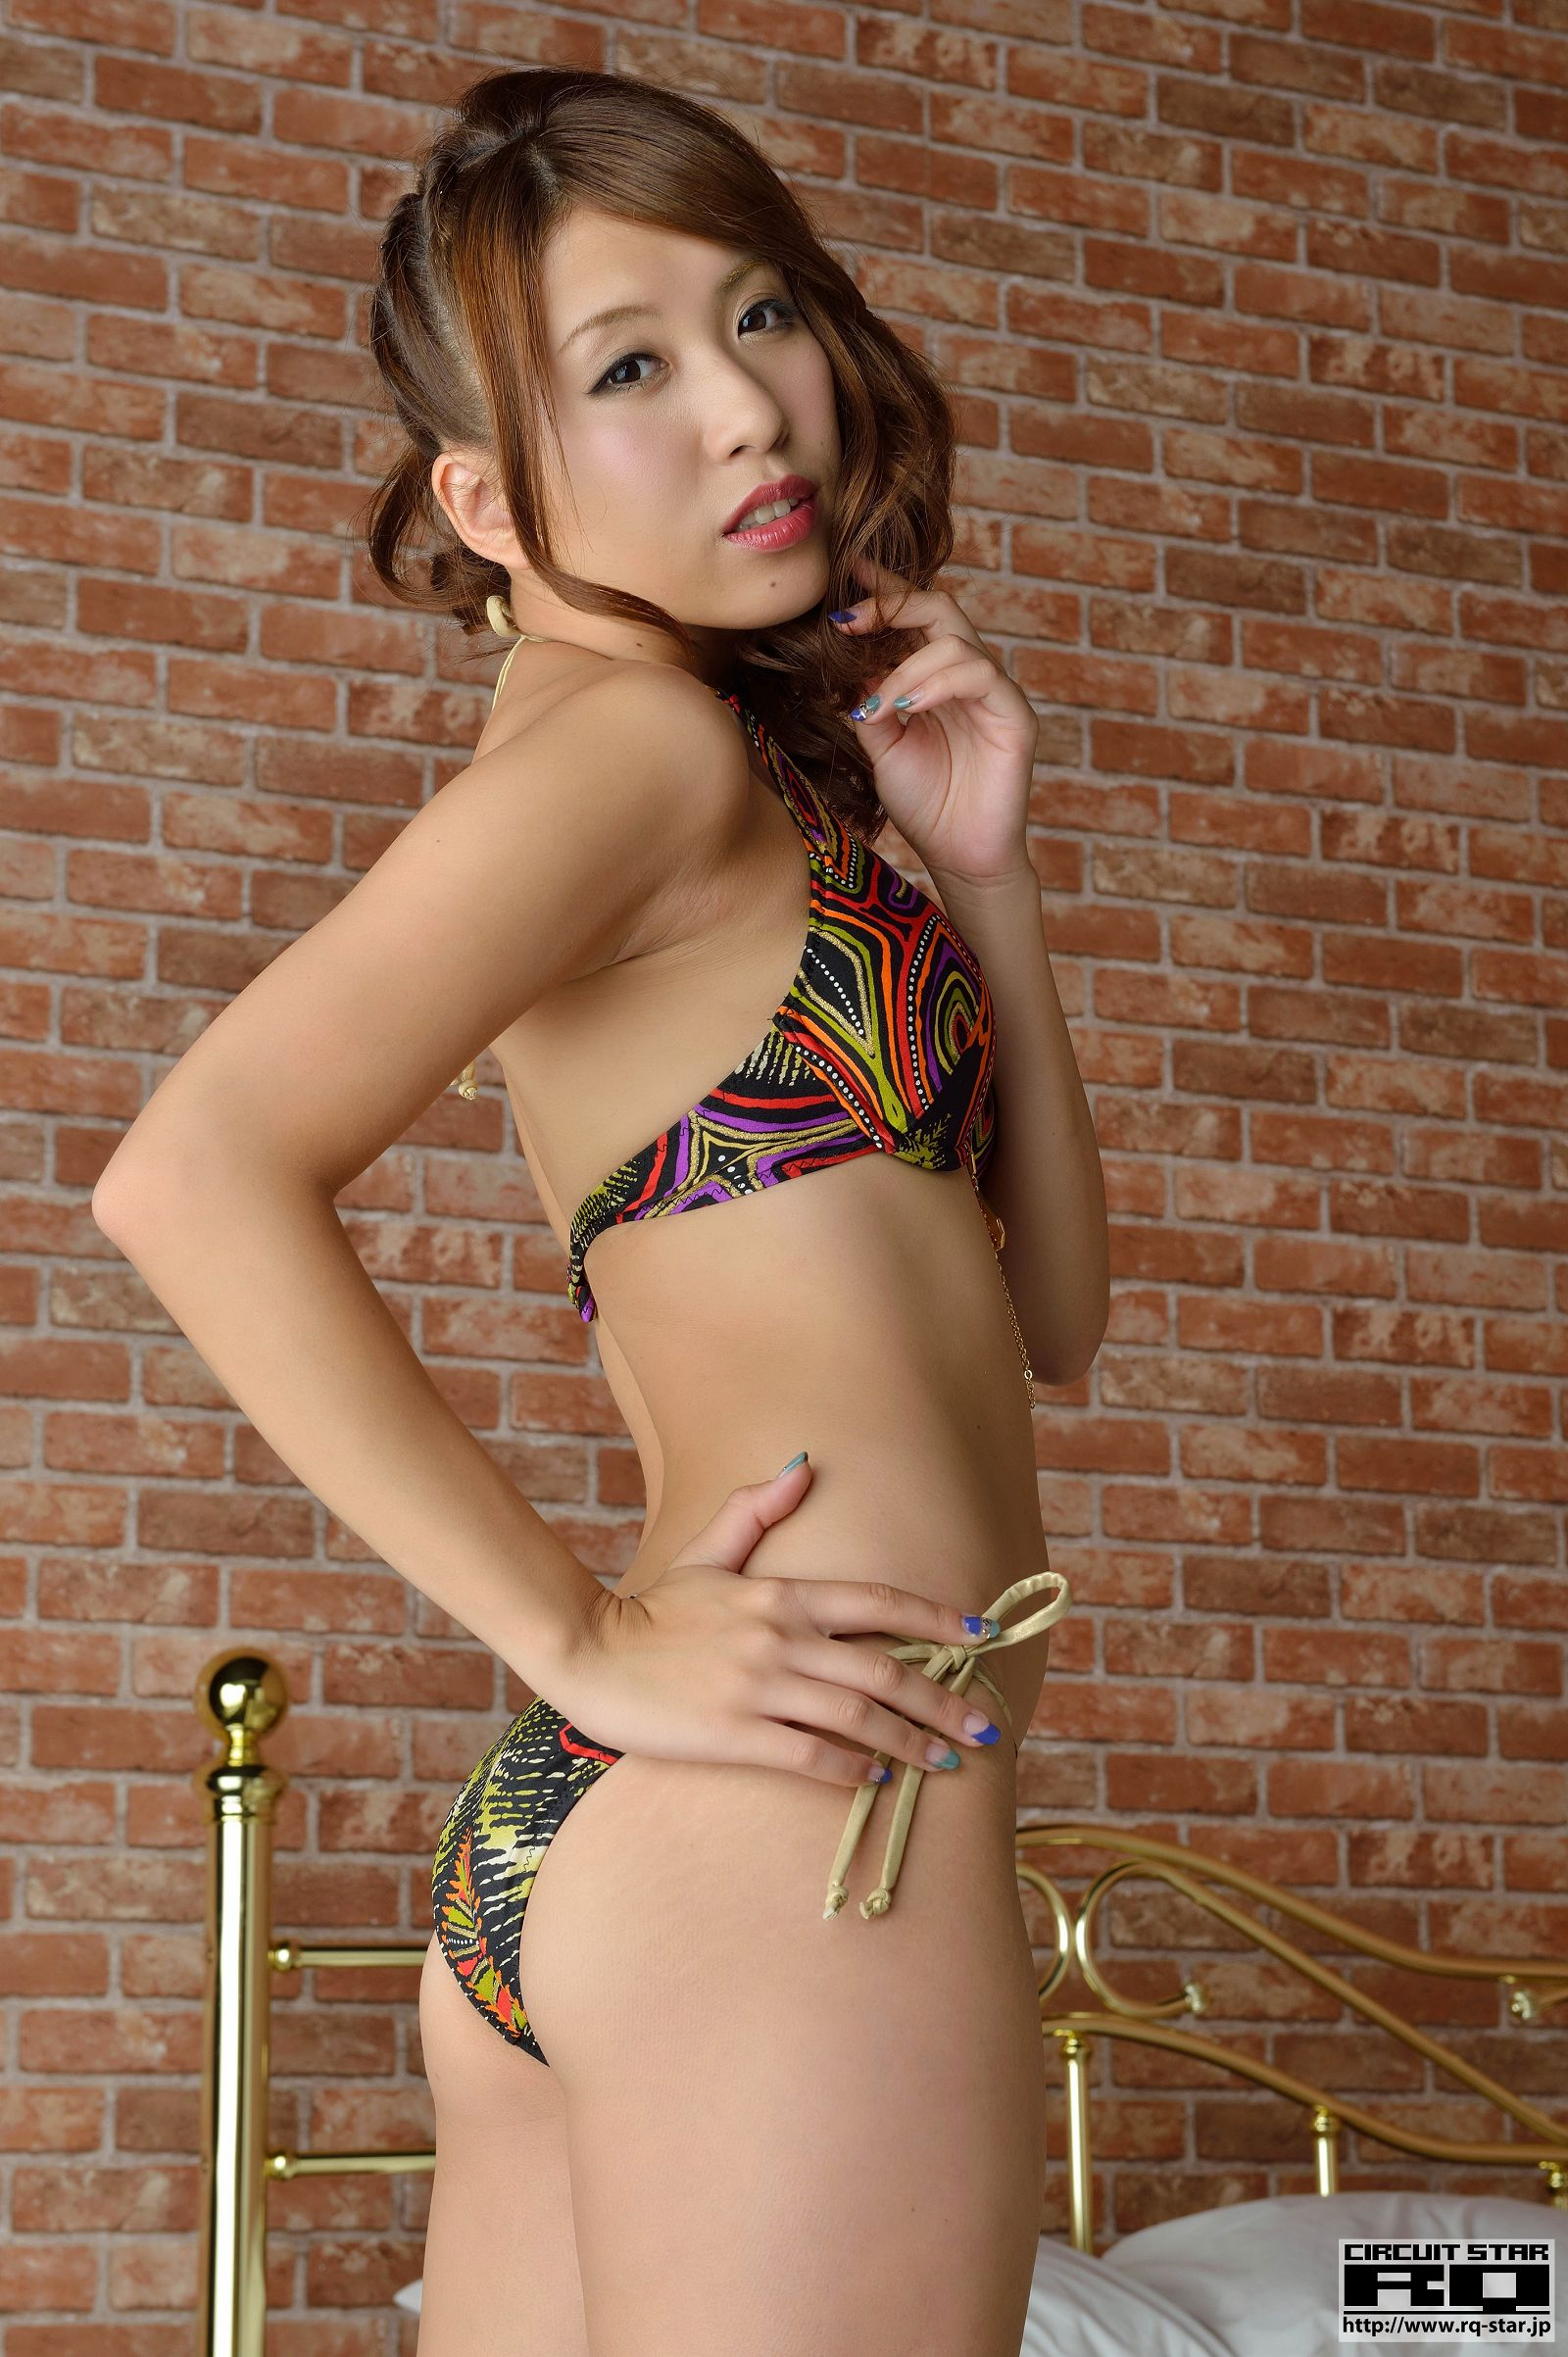 [RQ STAR美女] NO.01045 Miki Makibashi 牧橋美輝 Swim Suits[80P] RQ STAR 第4张